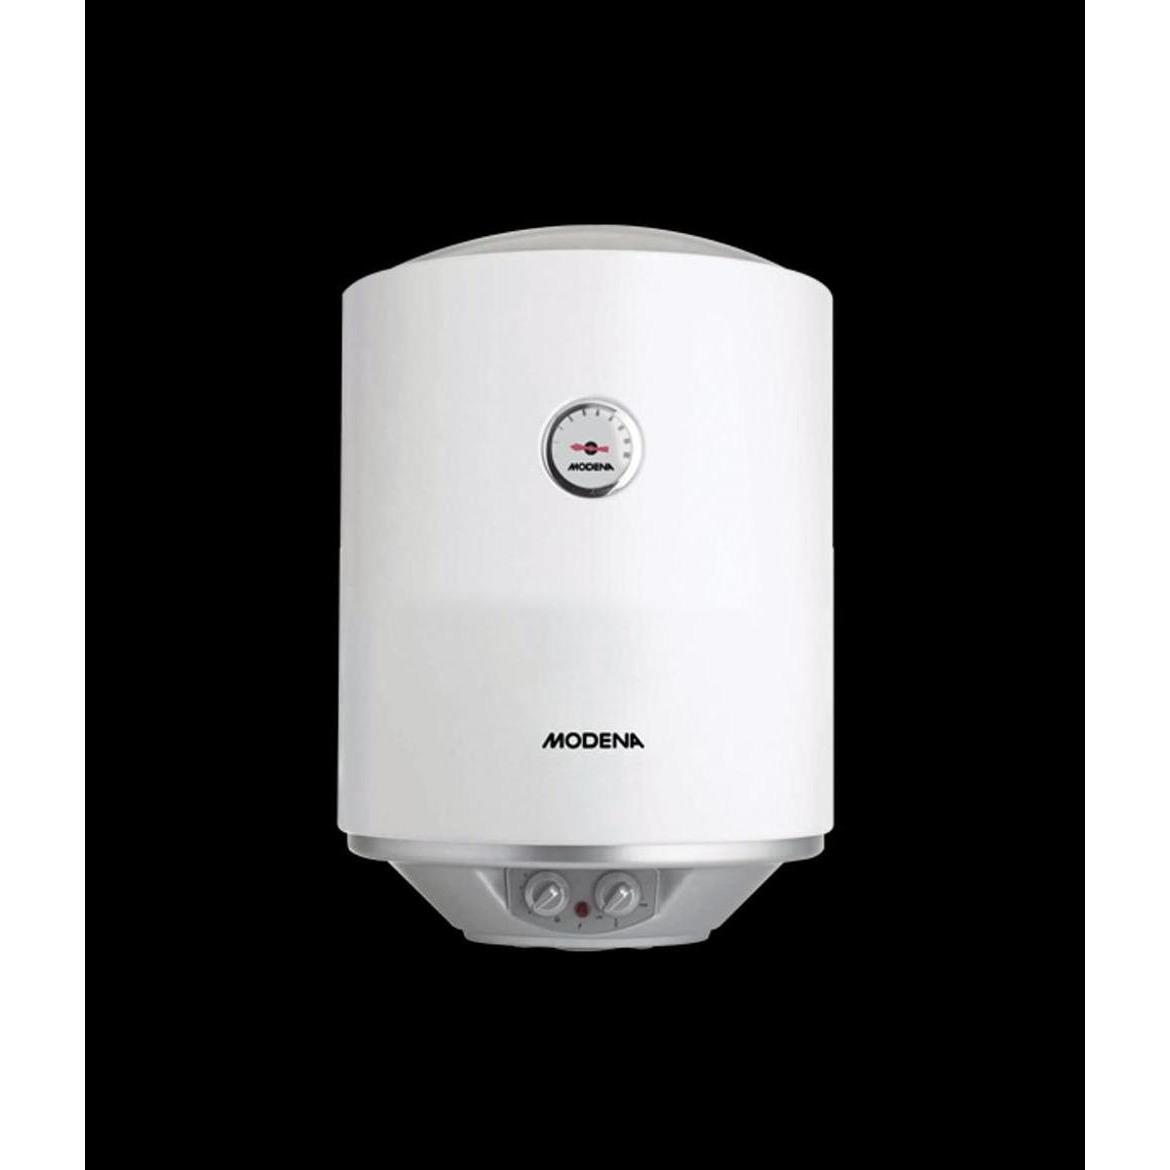 Super Promo Electric Water Heater Modena Es-30V .30 Liter. Murah